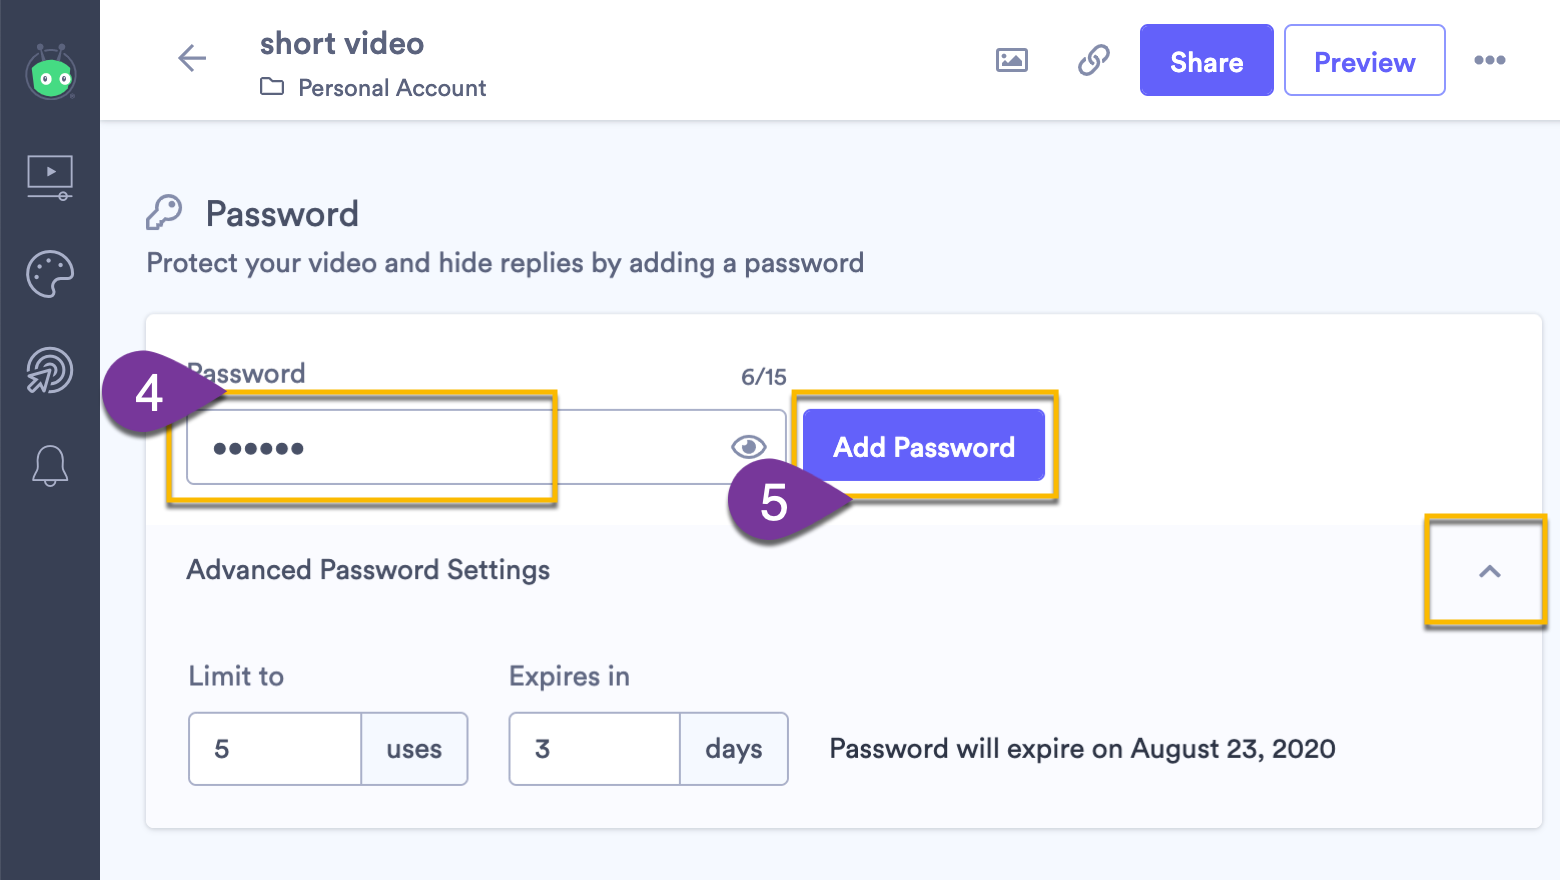 Entering a password as well as any advanced settings, like a limit on the number of times a password can be used